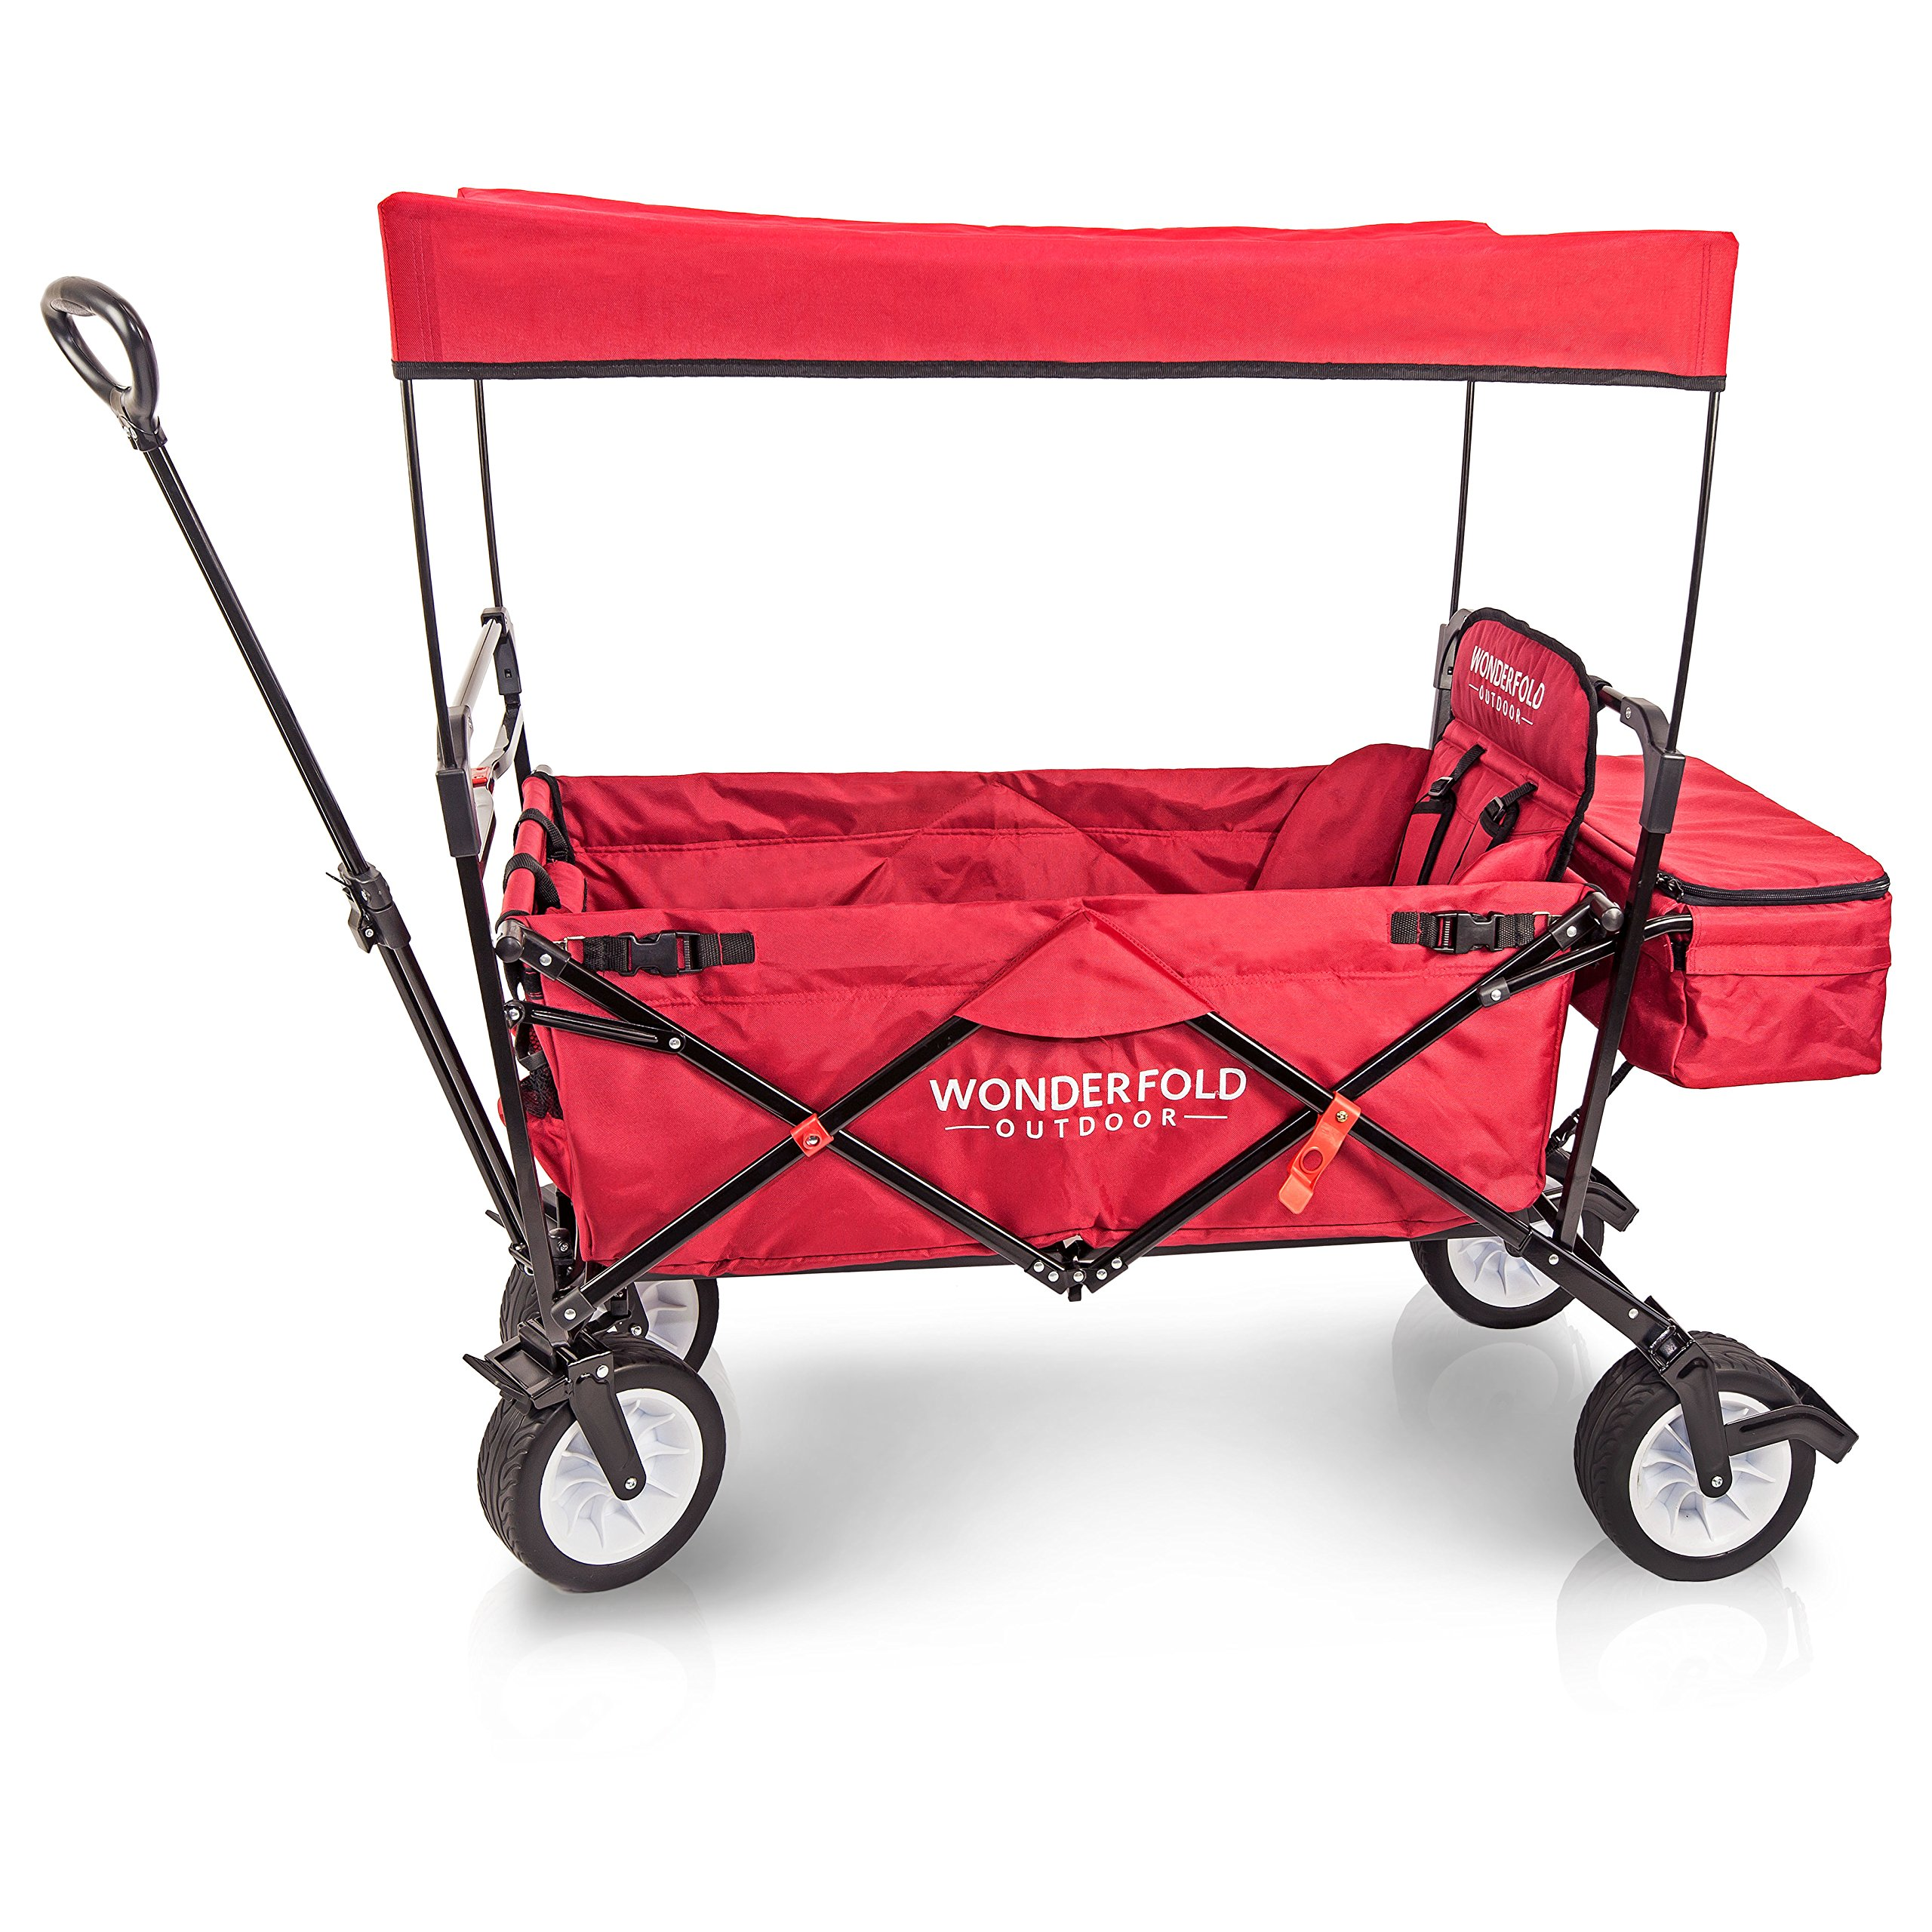 WonderFold Outdoor Premium Model Collapsible Folding Wagon With Canopy, Stand, One Pedal Brake, Wide EVA Tire & One Wagon Seat with 5-Point Seat-Belt (Ruby Red)